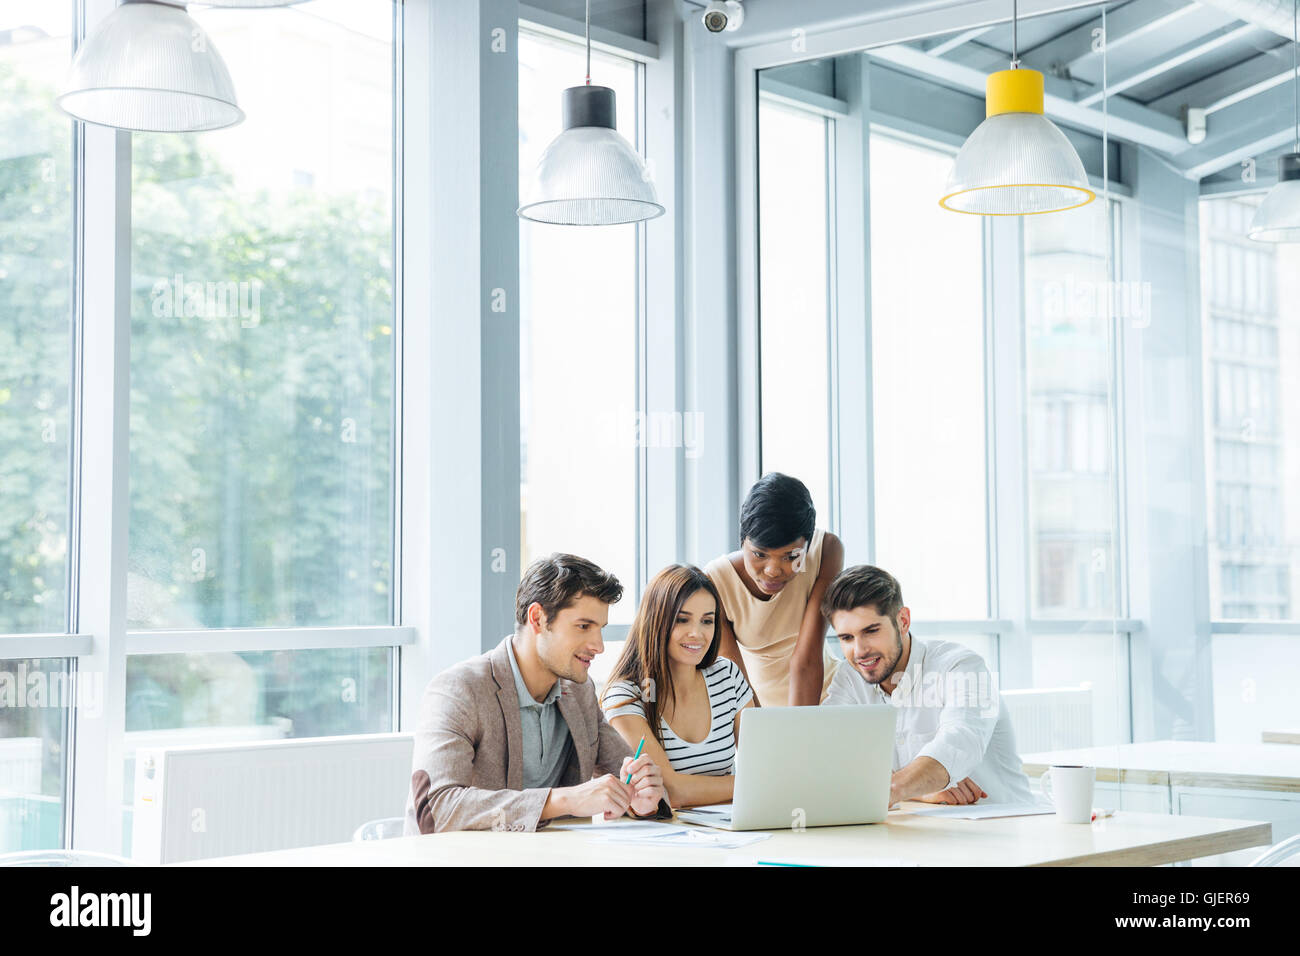 Multiethnic group of young business people creating presentation and using laptop together in office - Stock Image